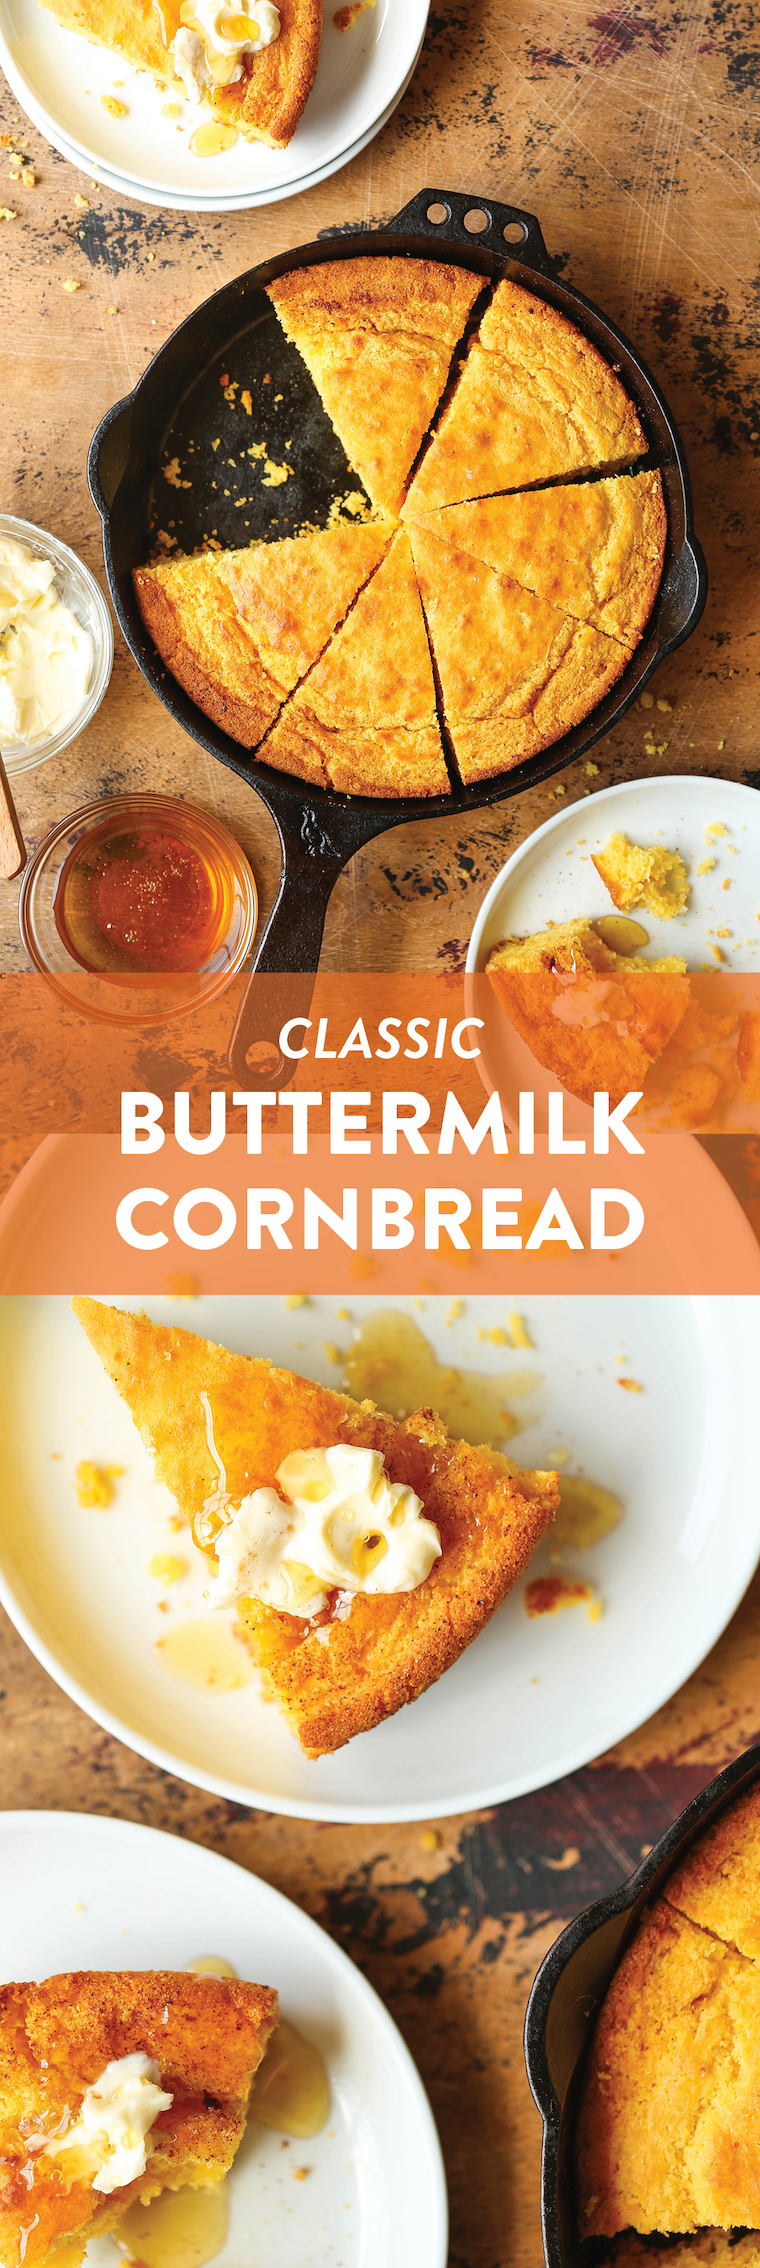 Buttermilk Cornbread - So easy! No mixer needed here! Amazingly moist and slightly sweet. A classic side dish loved by EVERYONE. Serve with butter. SO BOMB.